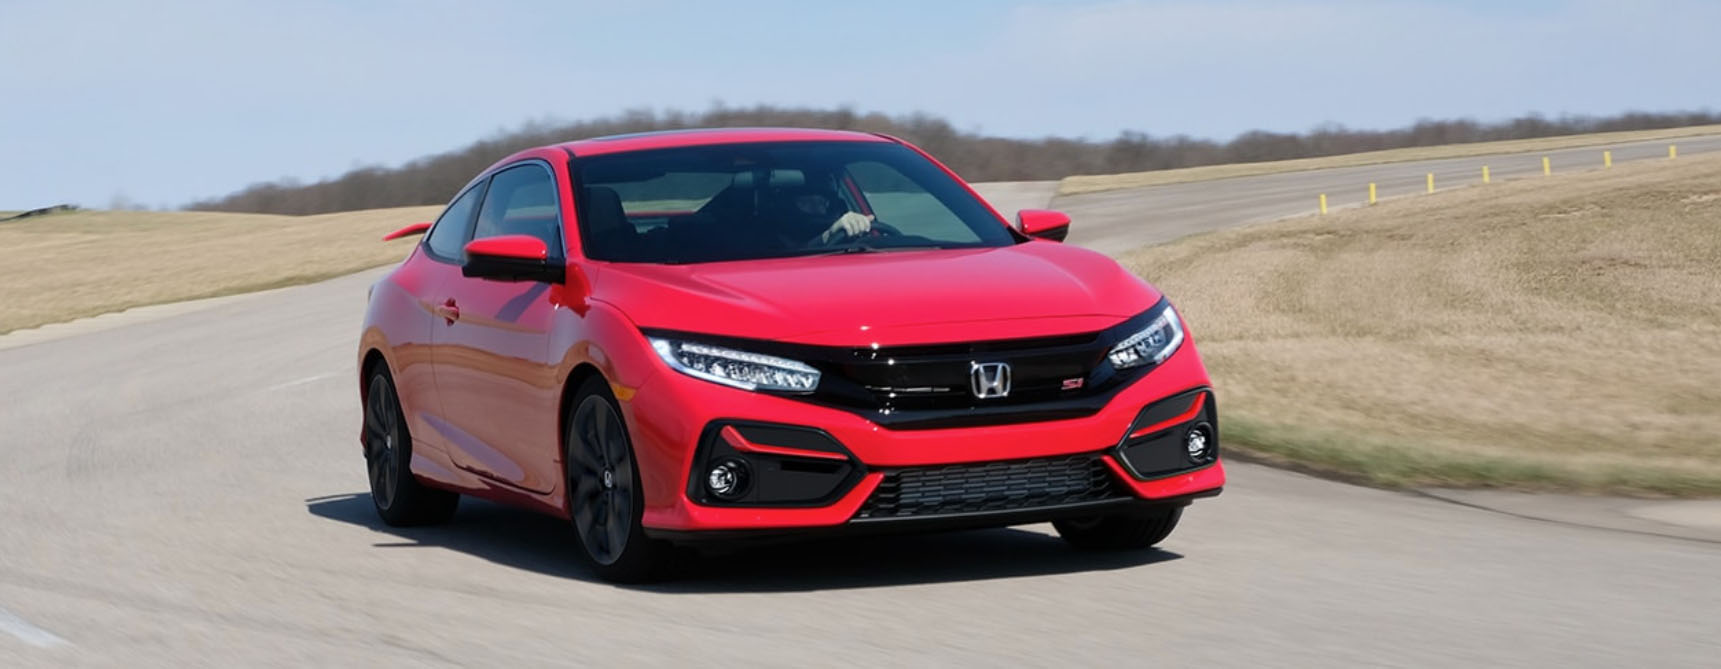 2020 Honda Civic Si Coupe Appearance Main Img